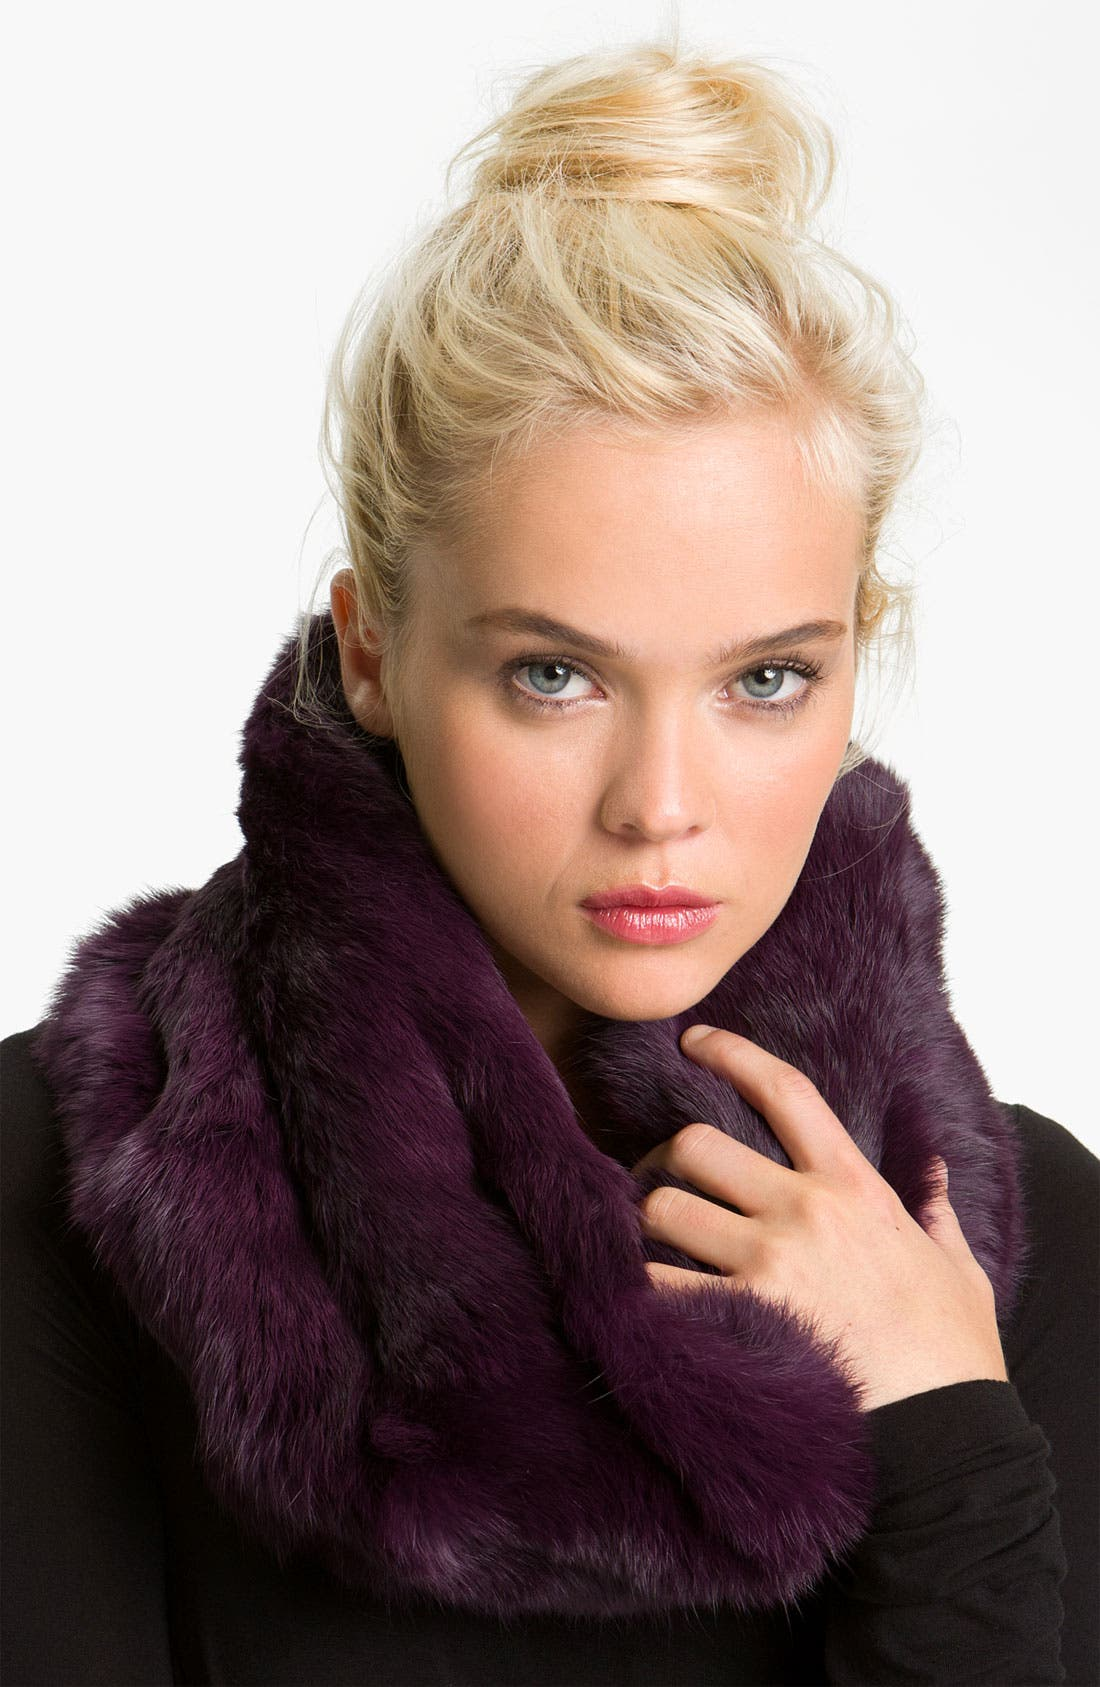 Alternate Image 1 Selected - Diane von Furstenberg Genuine Rabbit Fur Infinity Scarf